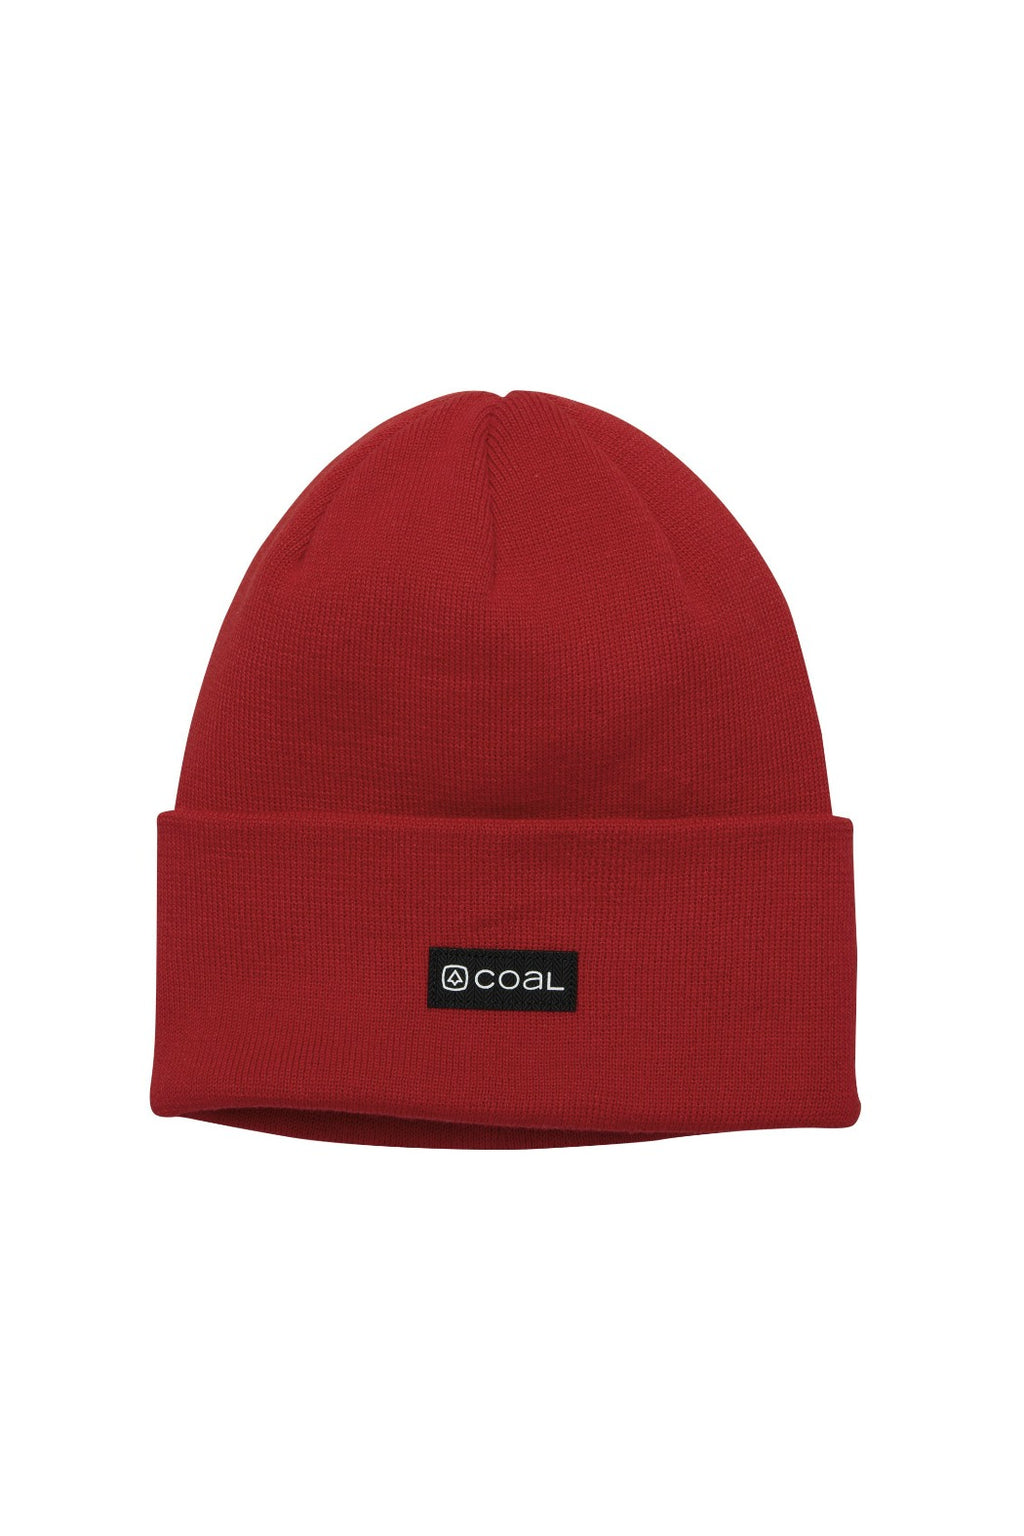 Coal The Carson Beanie - Red